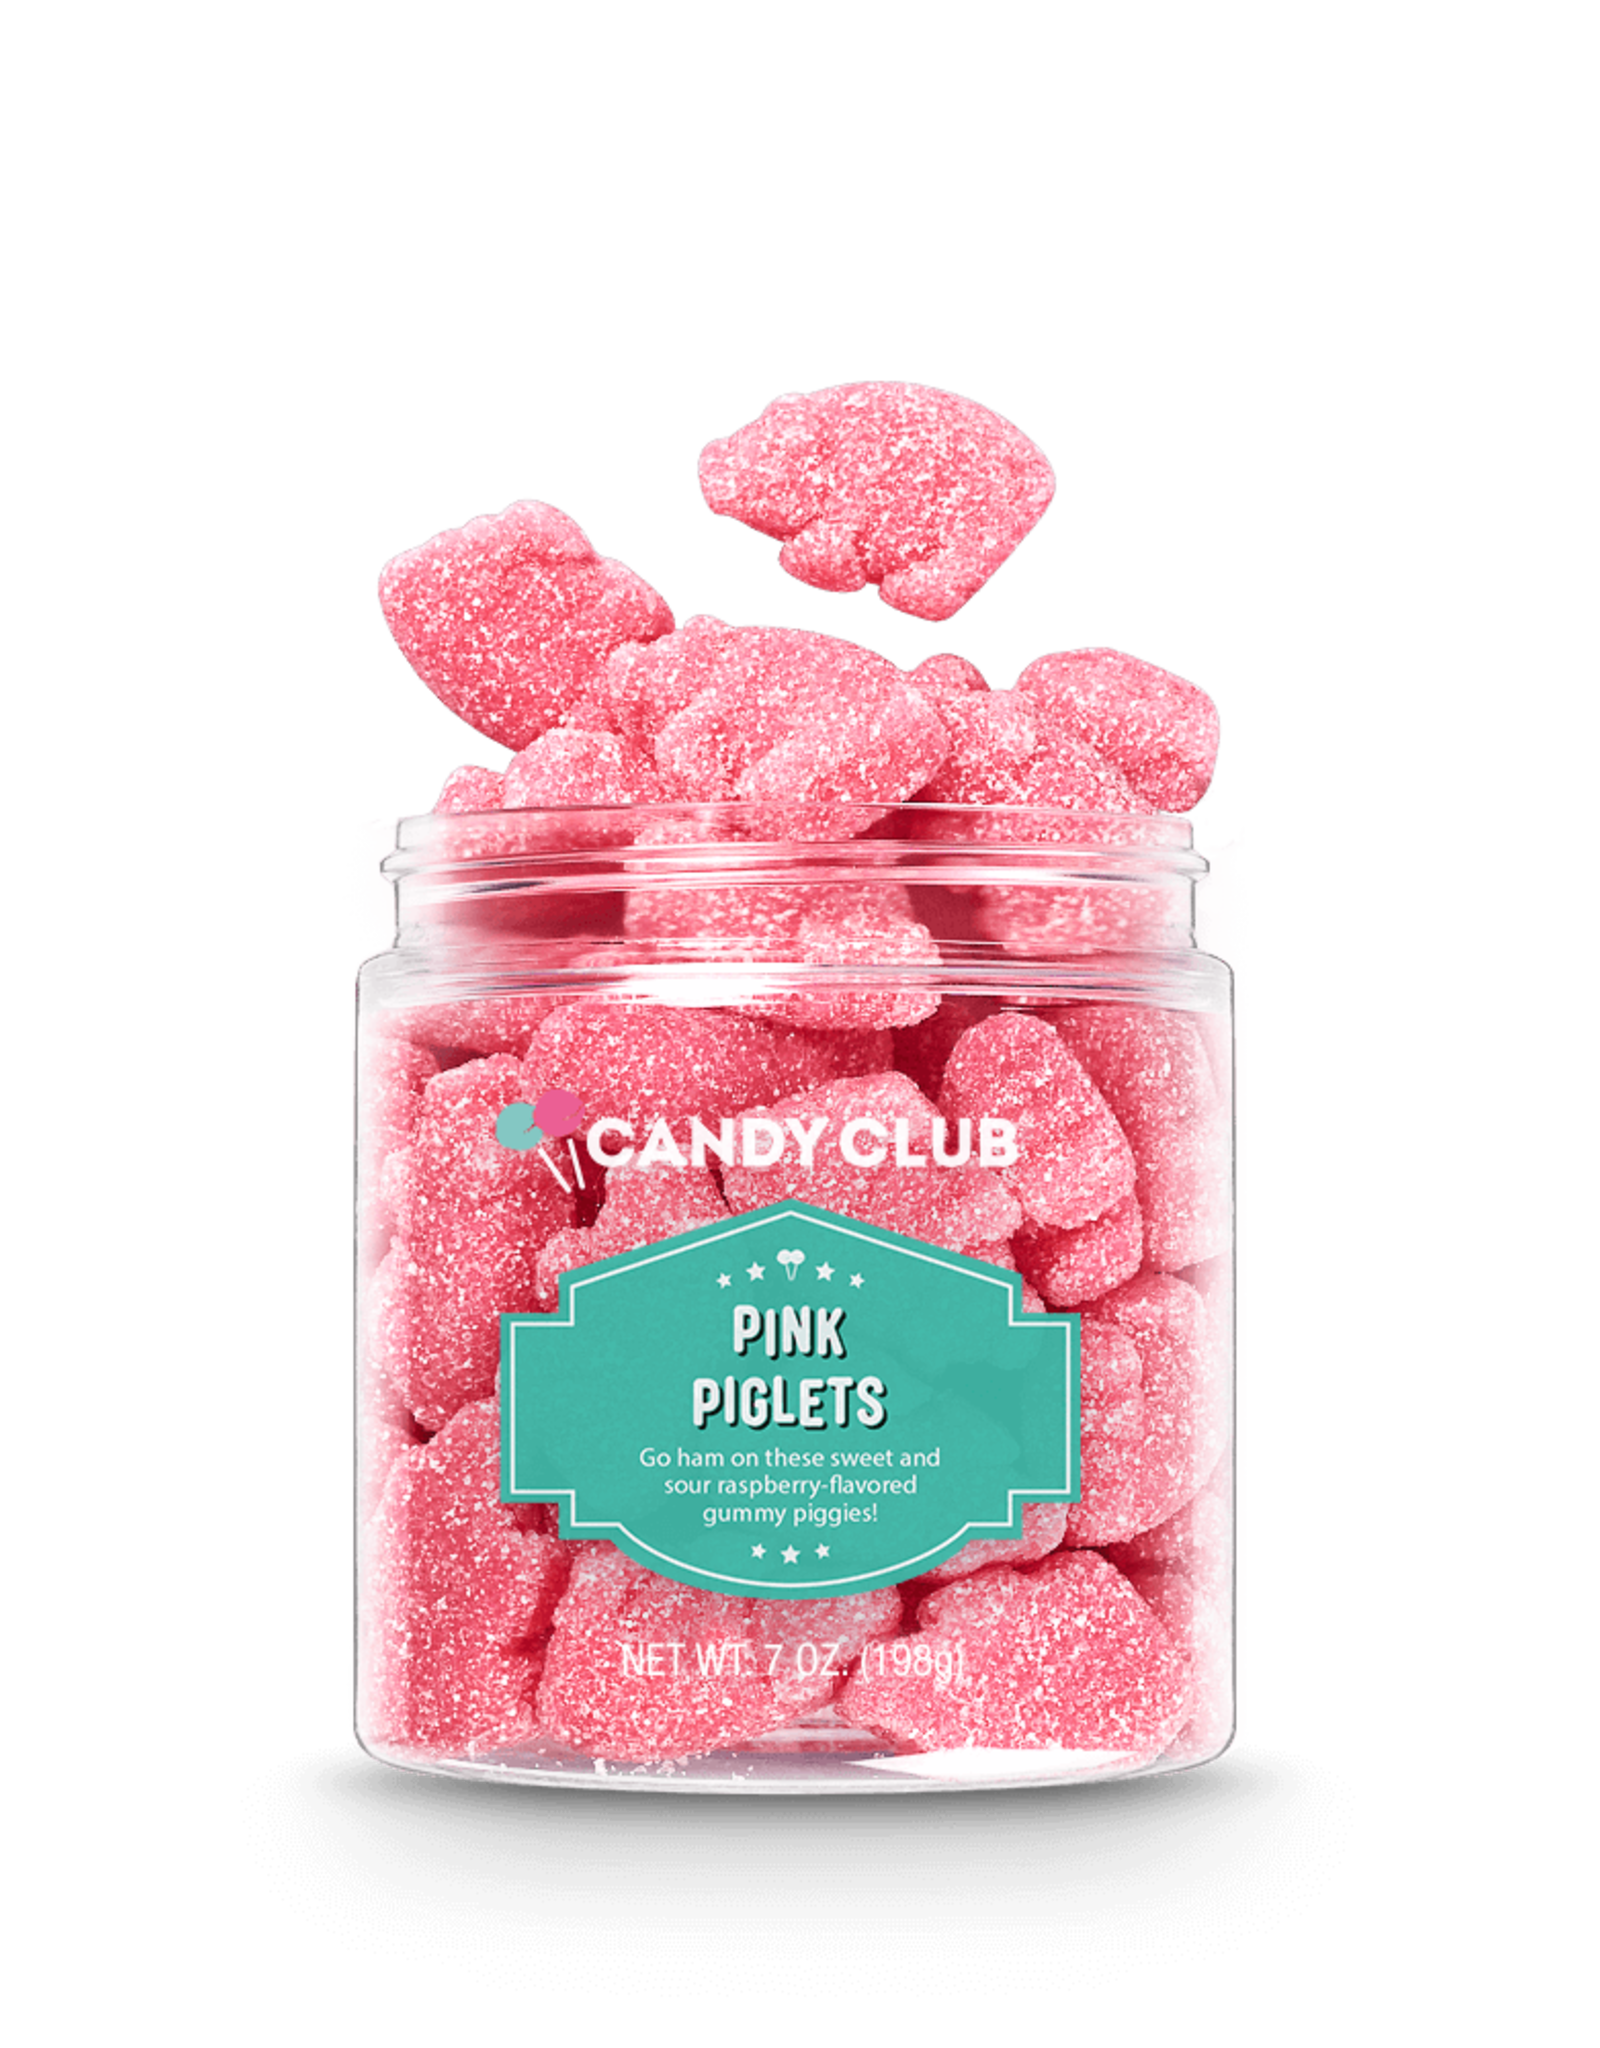 Candy Club Pink Piglets Candy